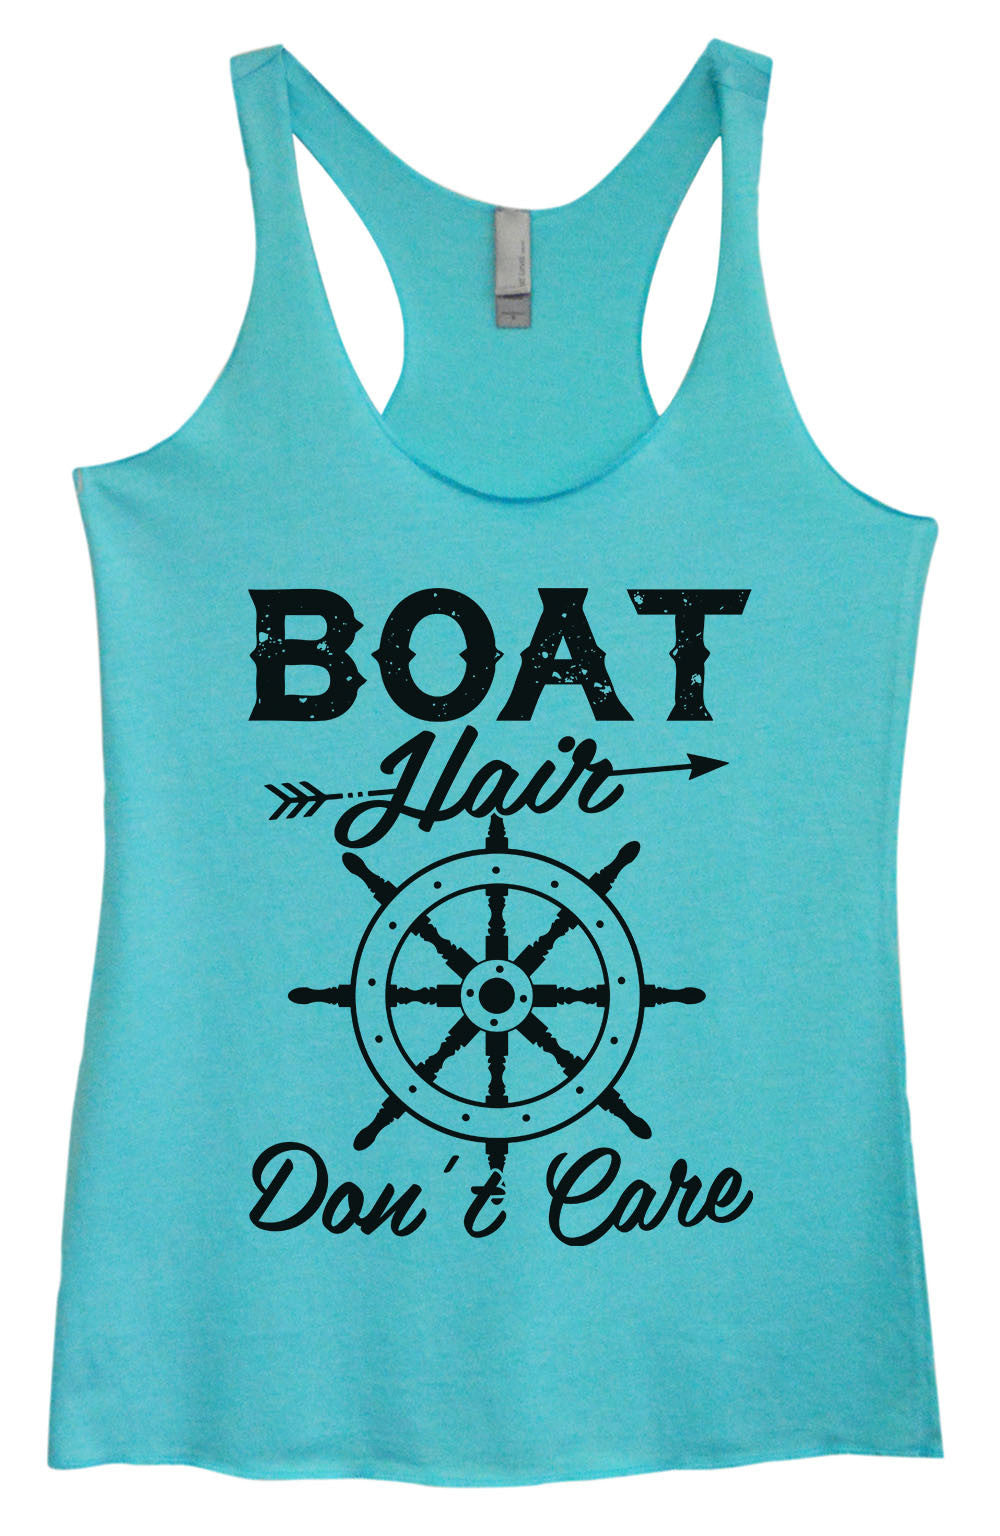 Womens Fashion Triblend Tank Top - Boat Hair Don't Care - Tri-1441 - Funny Shirts Tank Tops Burnouts and Triblends  - 4